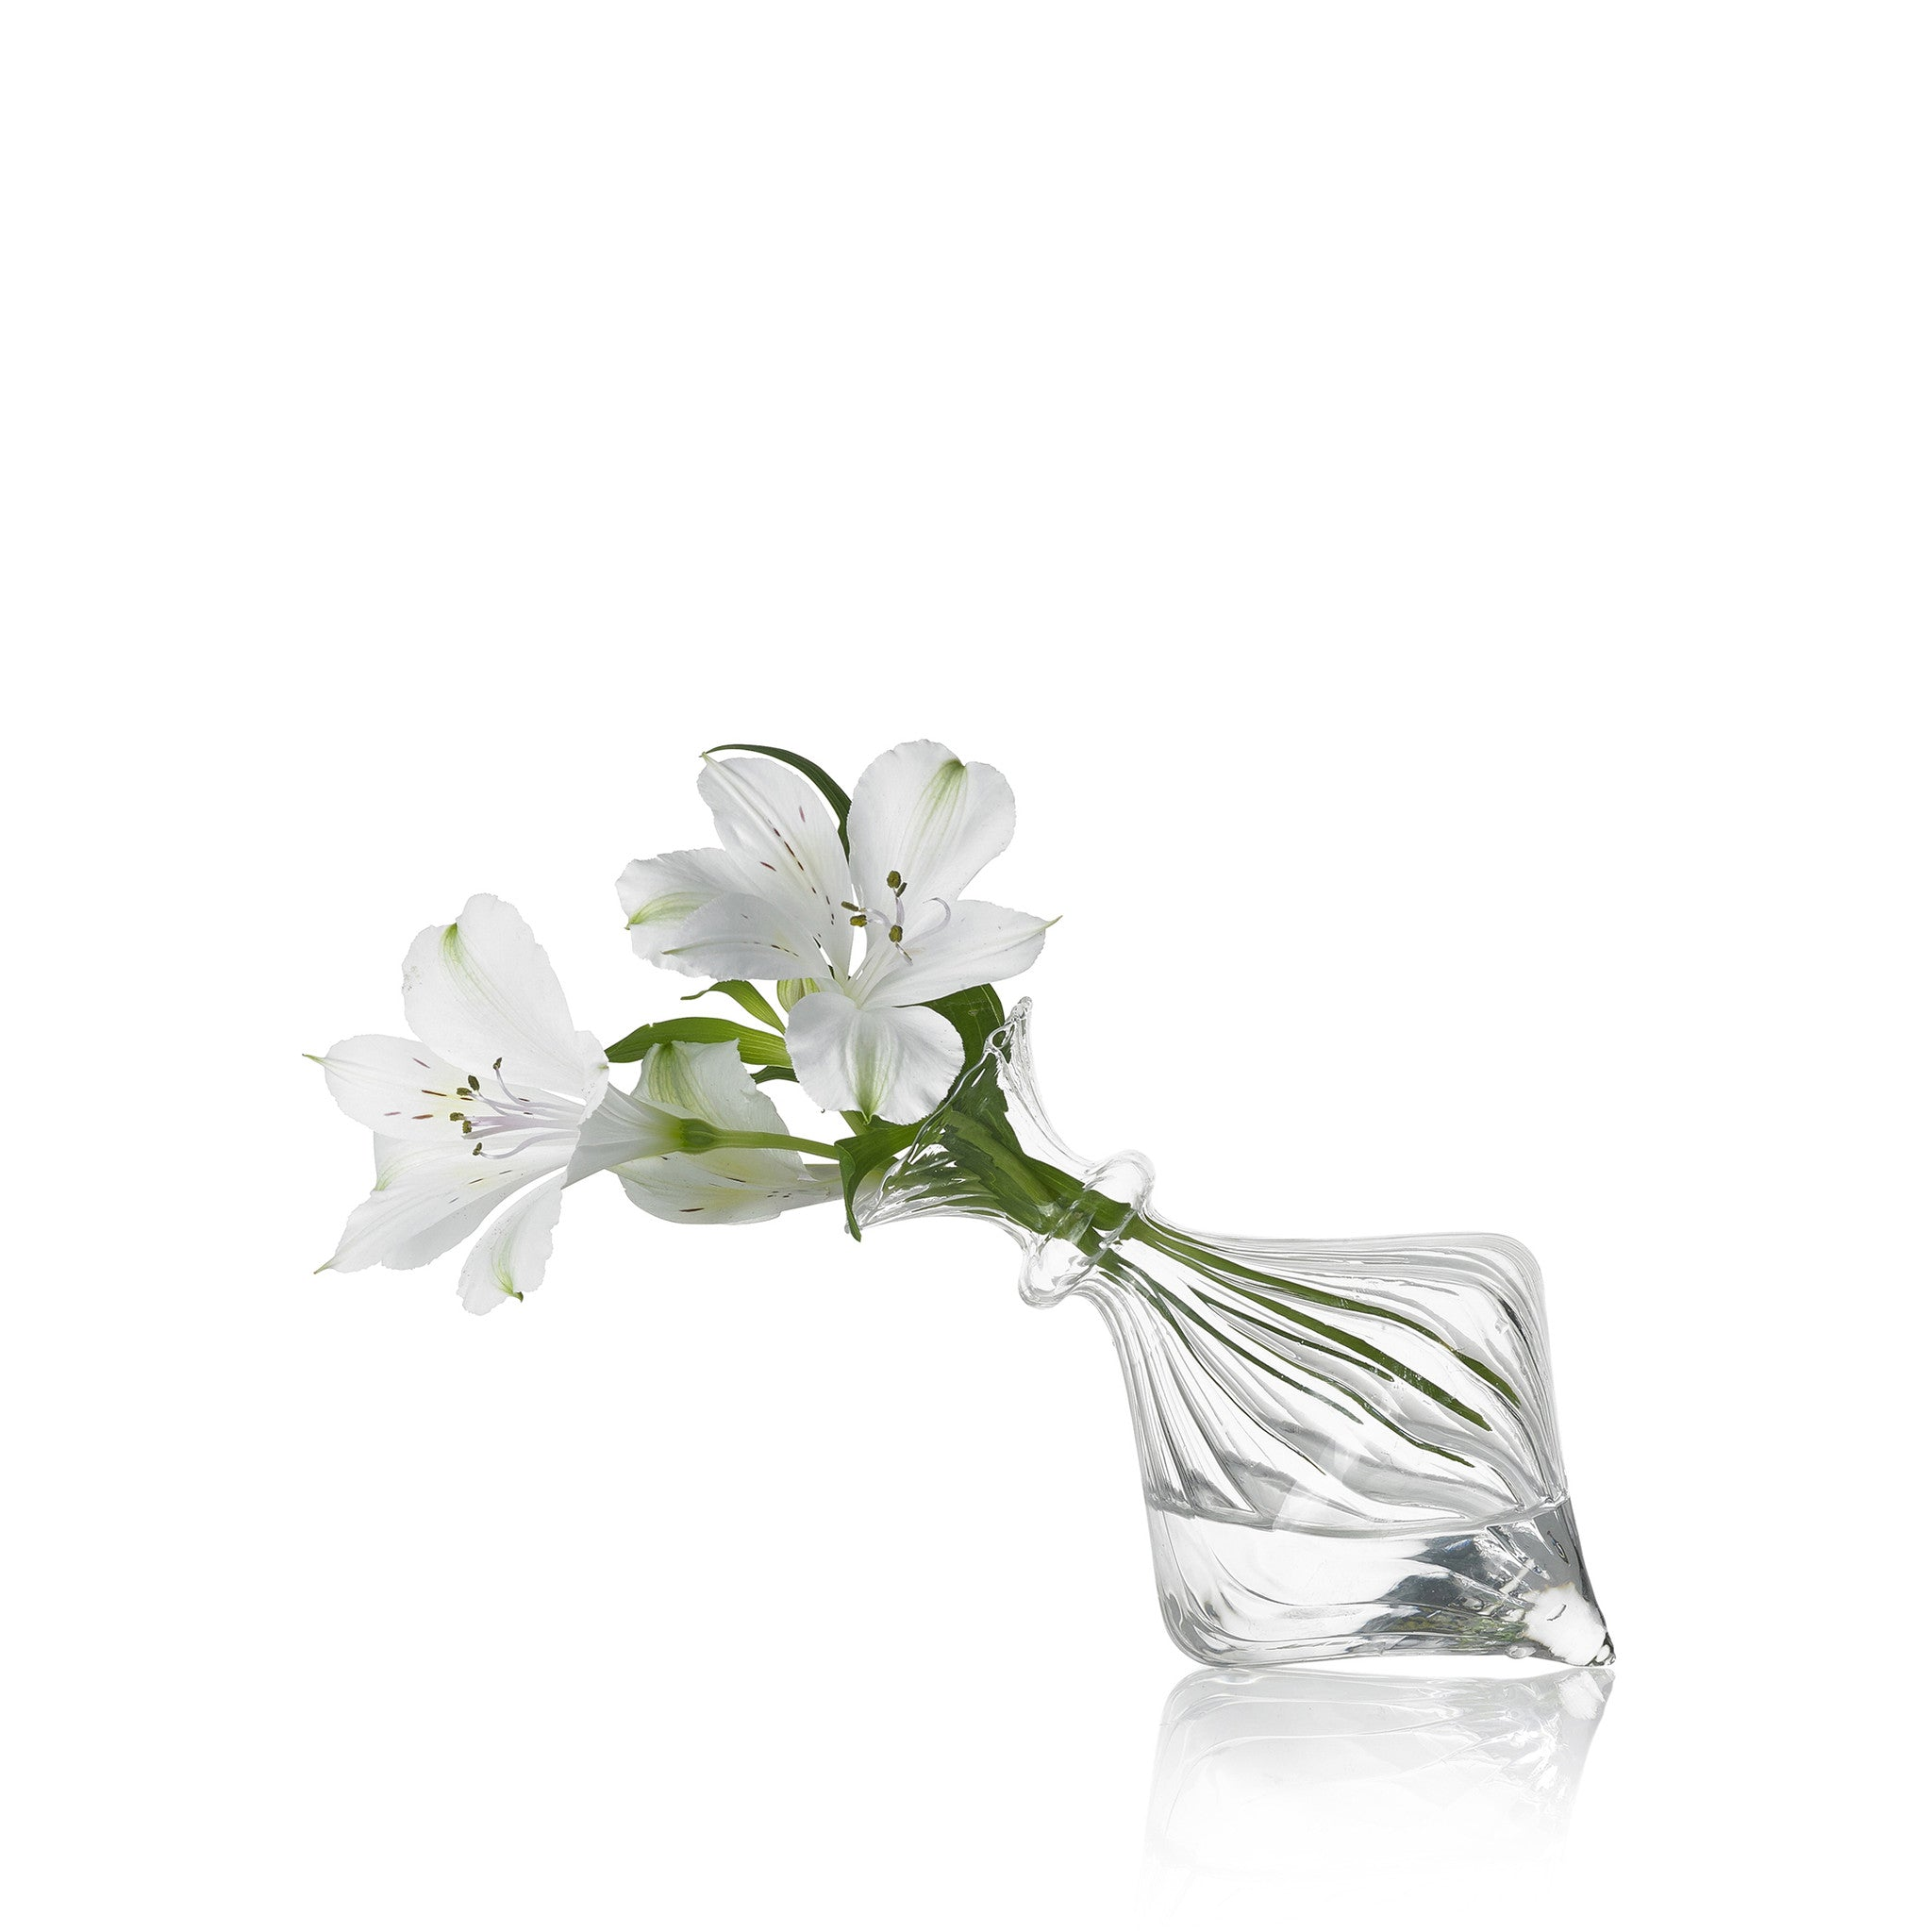 Glass Flower Vase - Mia